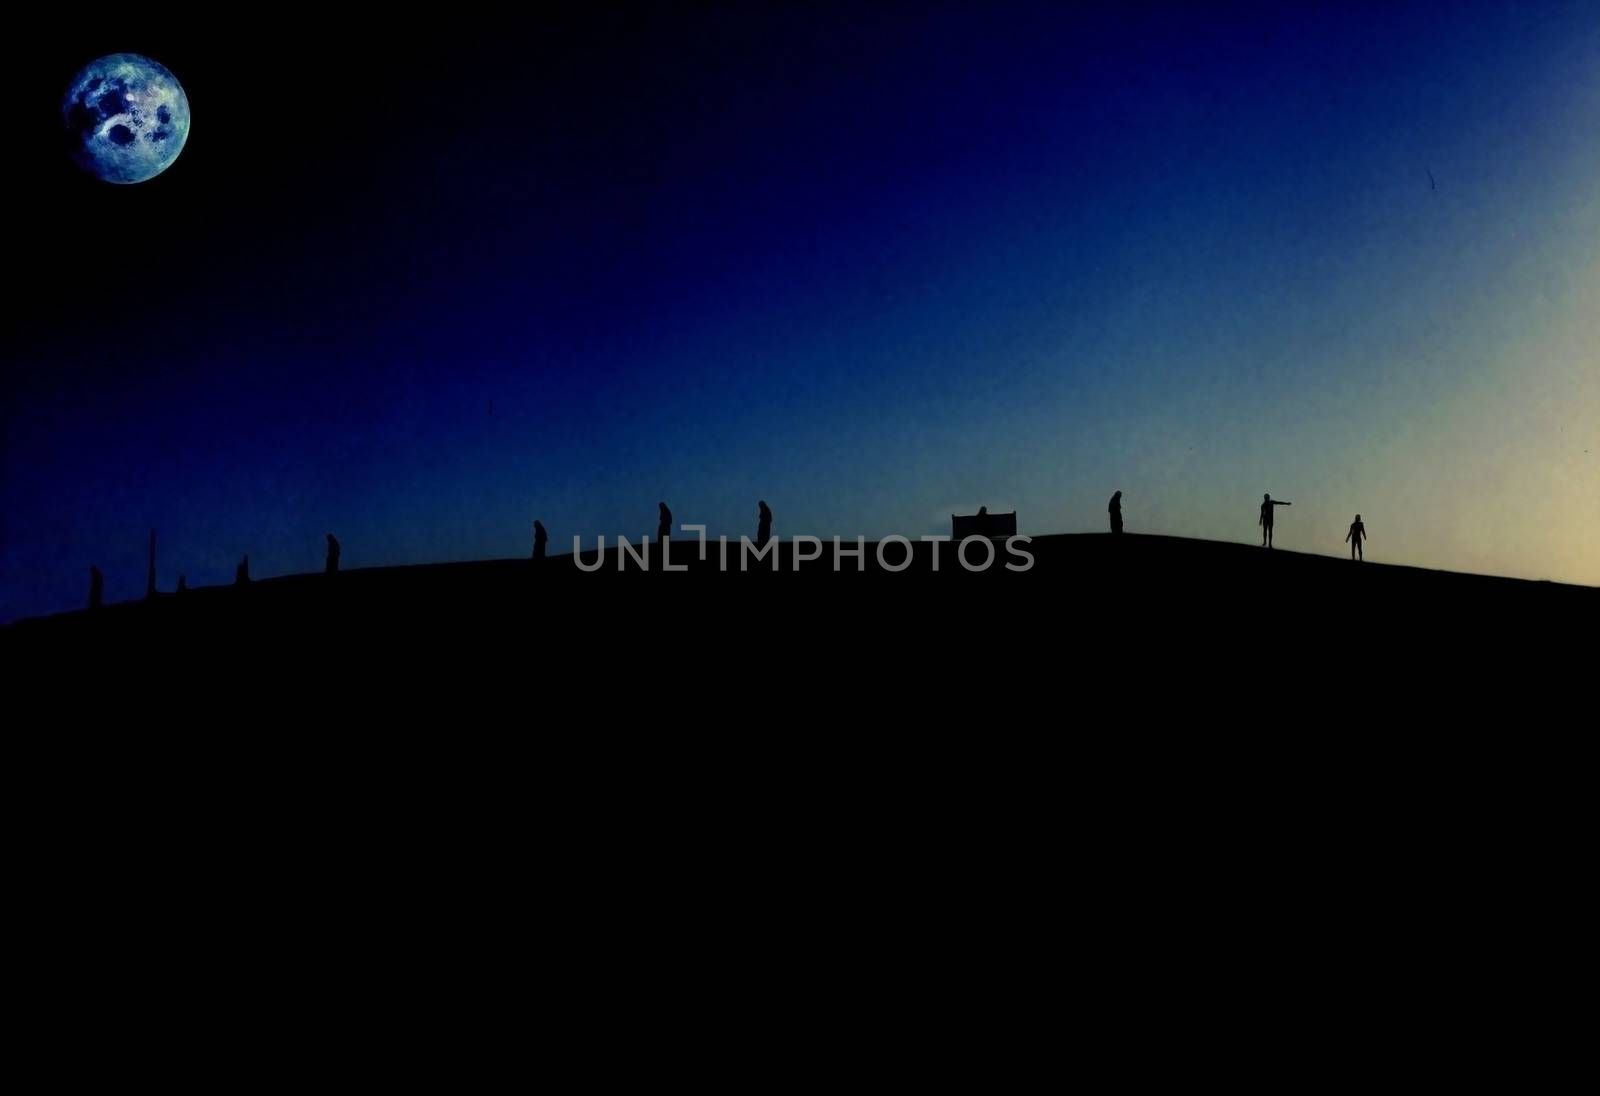 Evening silhouettes of people on mountain. Full moon in night sky